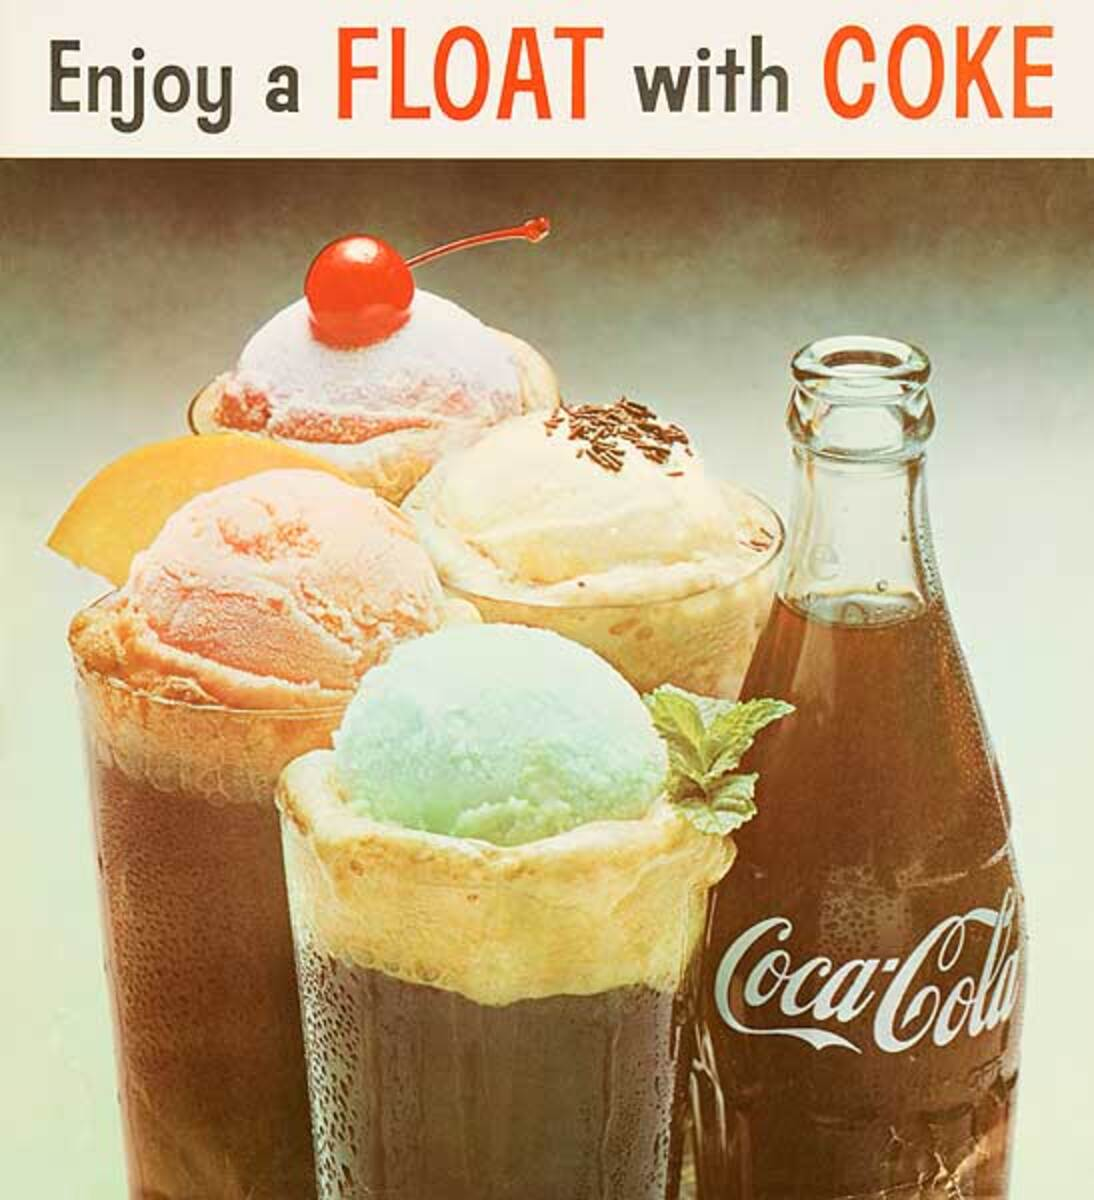 Enjoy a Float With a Coke Original Advertising Poster with Coke bottle